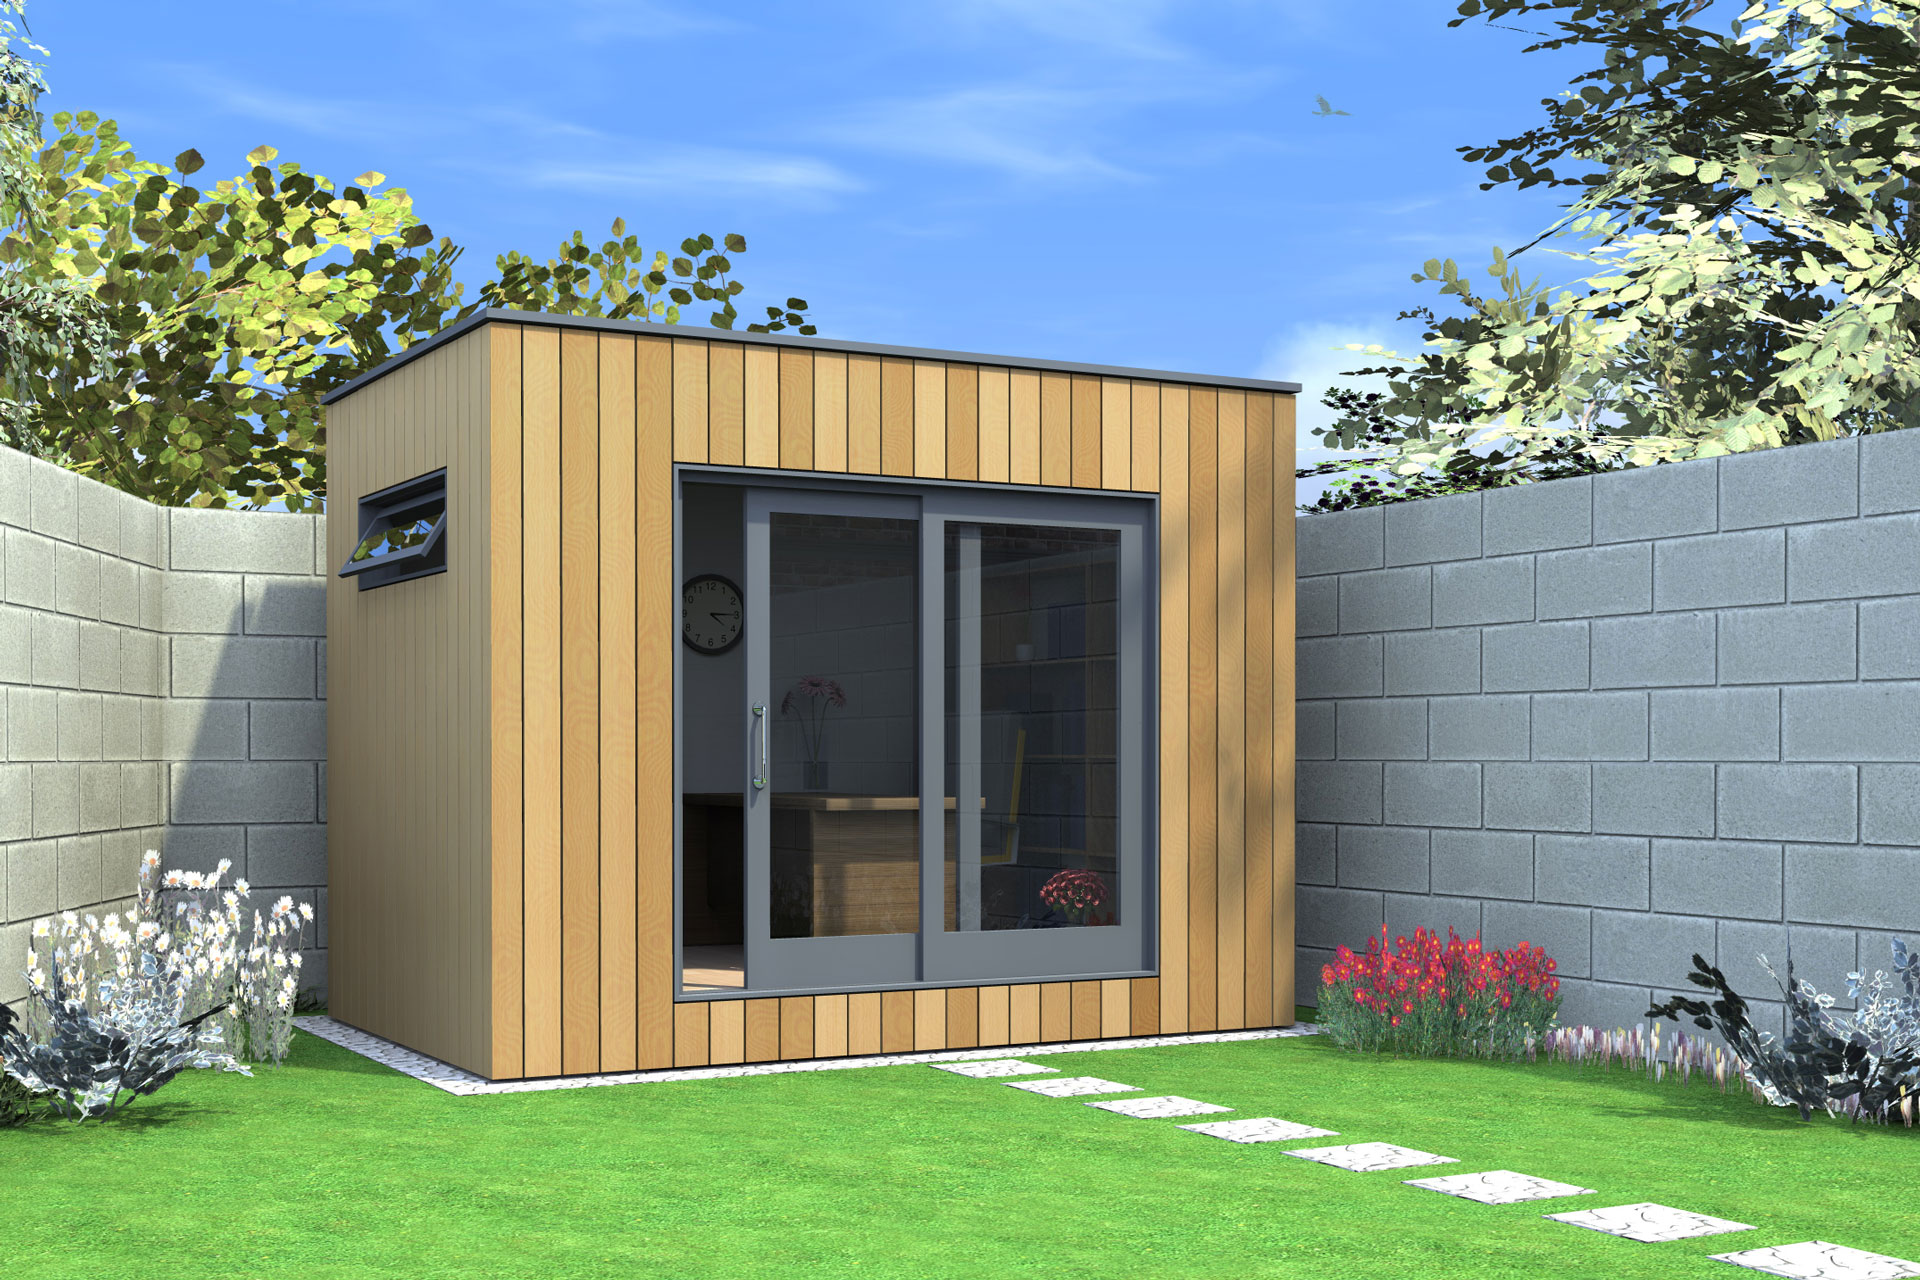 Garden office gallery photos pictures plans design for Garden office ideas uk